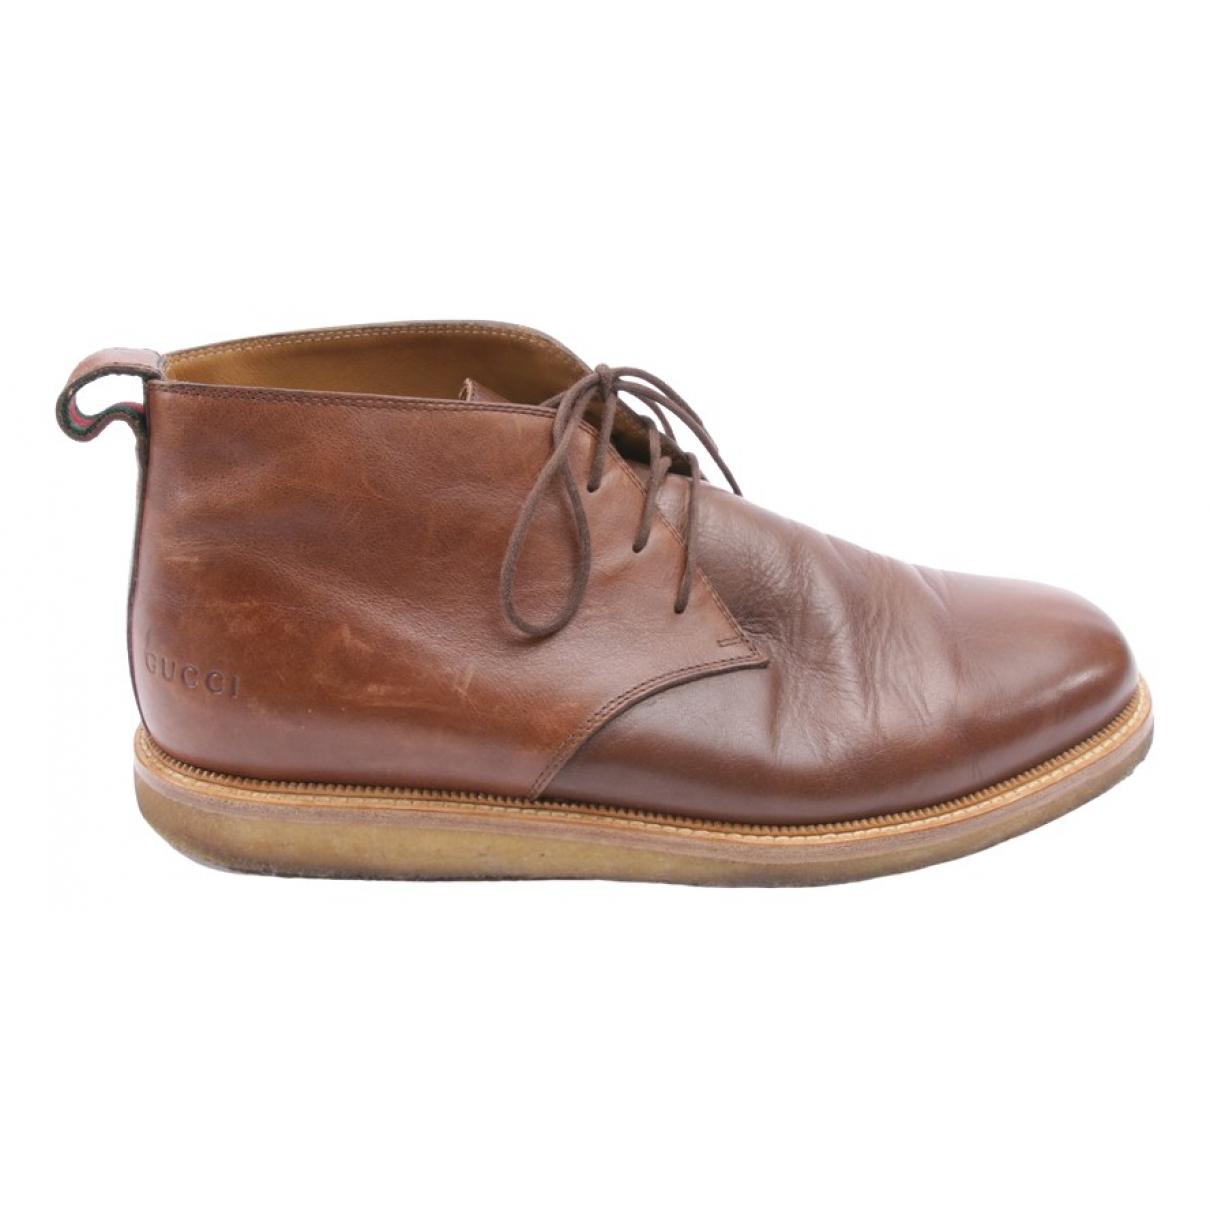 Gucci \N Brown Leather Ankle boots for Women 43 EU